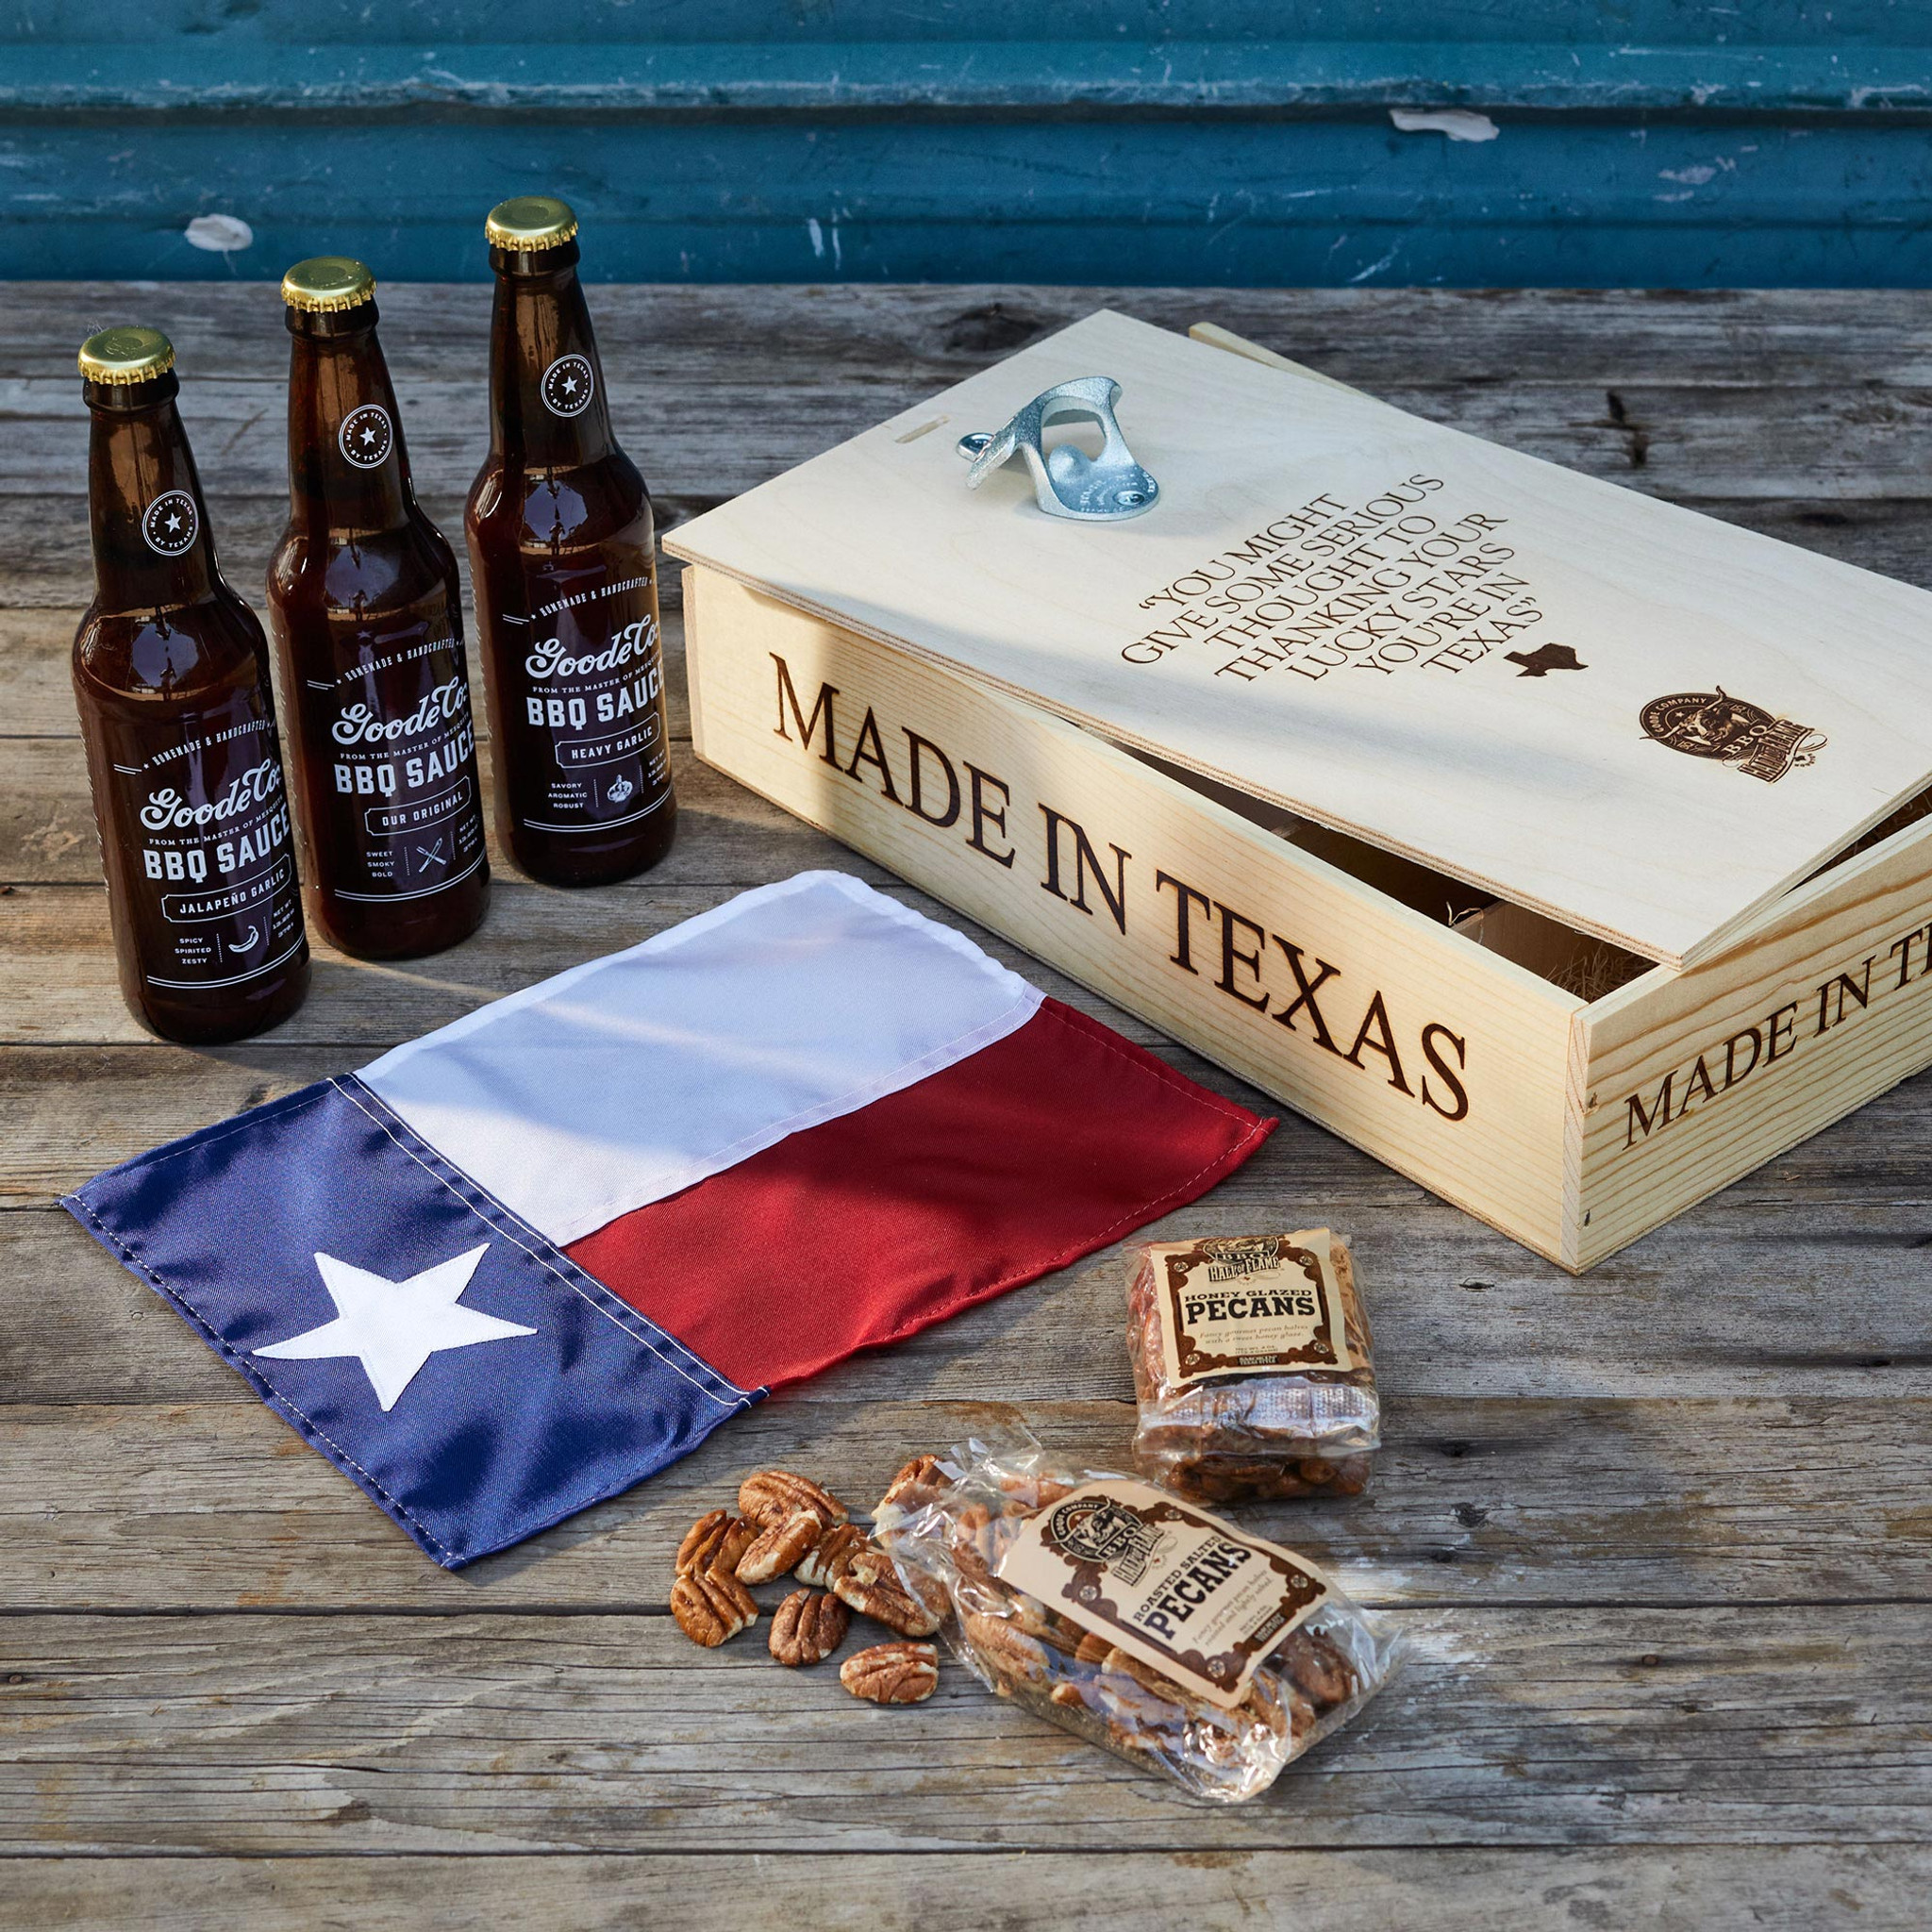 Goode Co's Uncle Joe's Secret Gift Box, consisting of 1 bottle each of Goode's Original BBQ, Heavy Garlic, & Jalapeño Garlic Sauces, 1 package each of Roasted Salted & Honey Glazed Pecans, and 1 miniature Texas state flag.